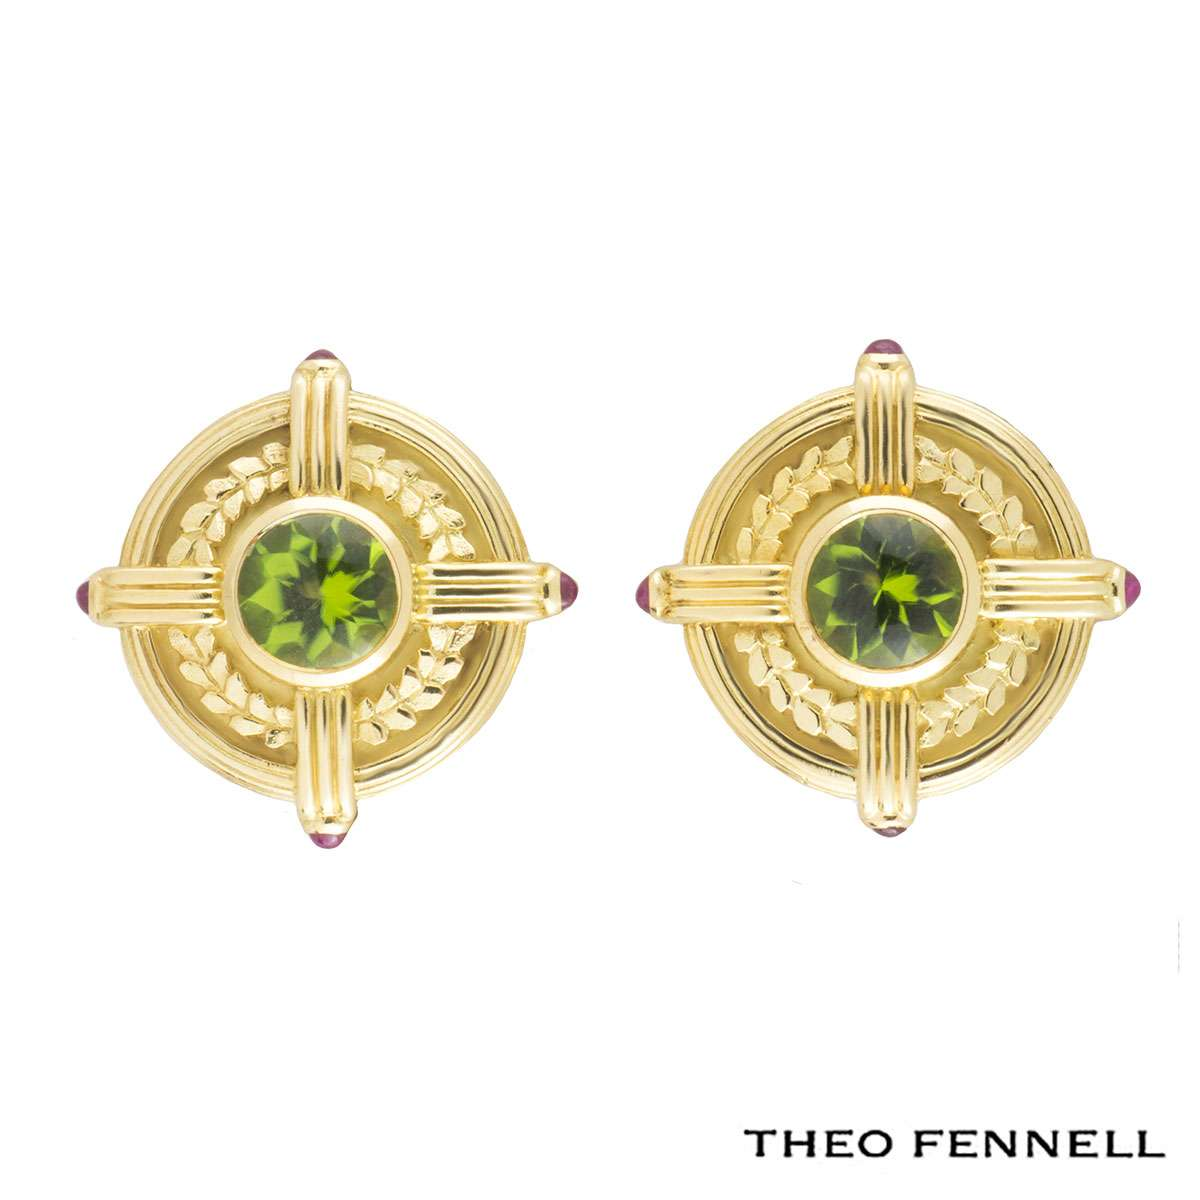 Theo Fennell Peridot and Ruby Earrings